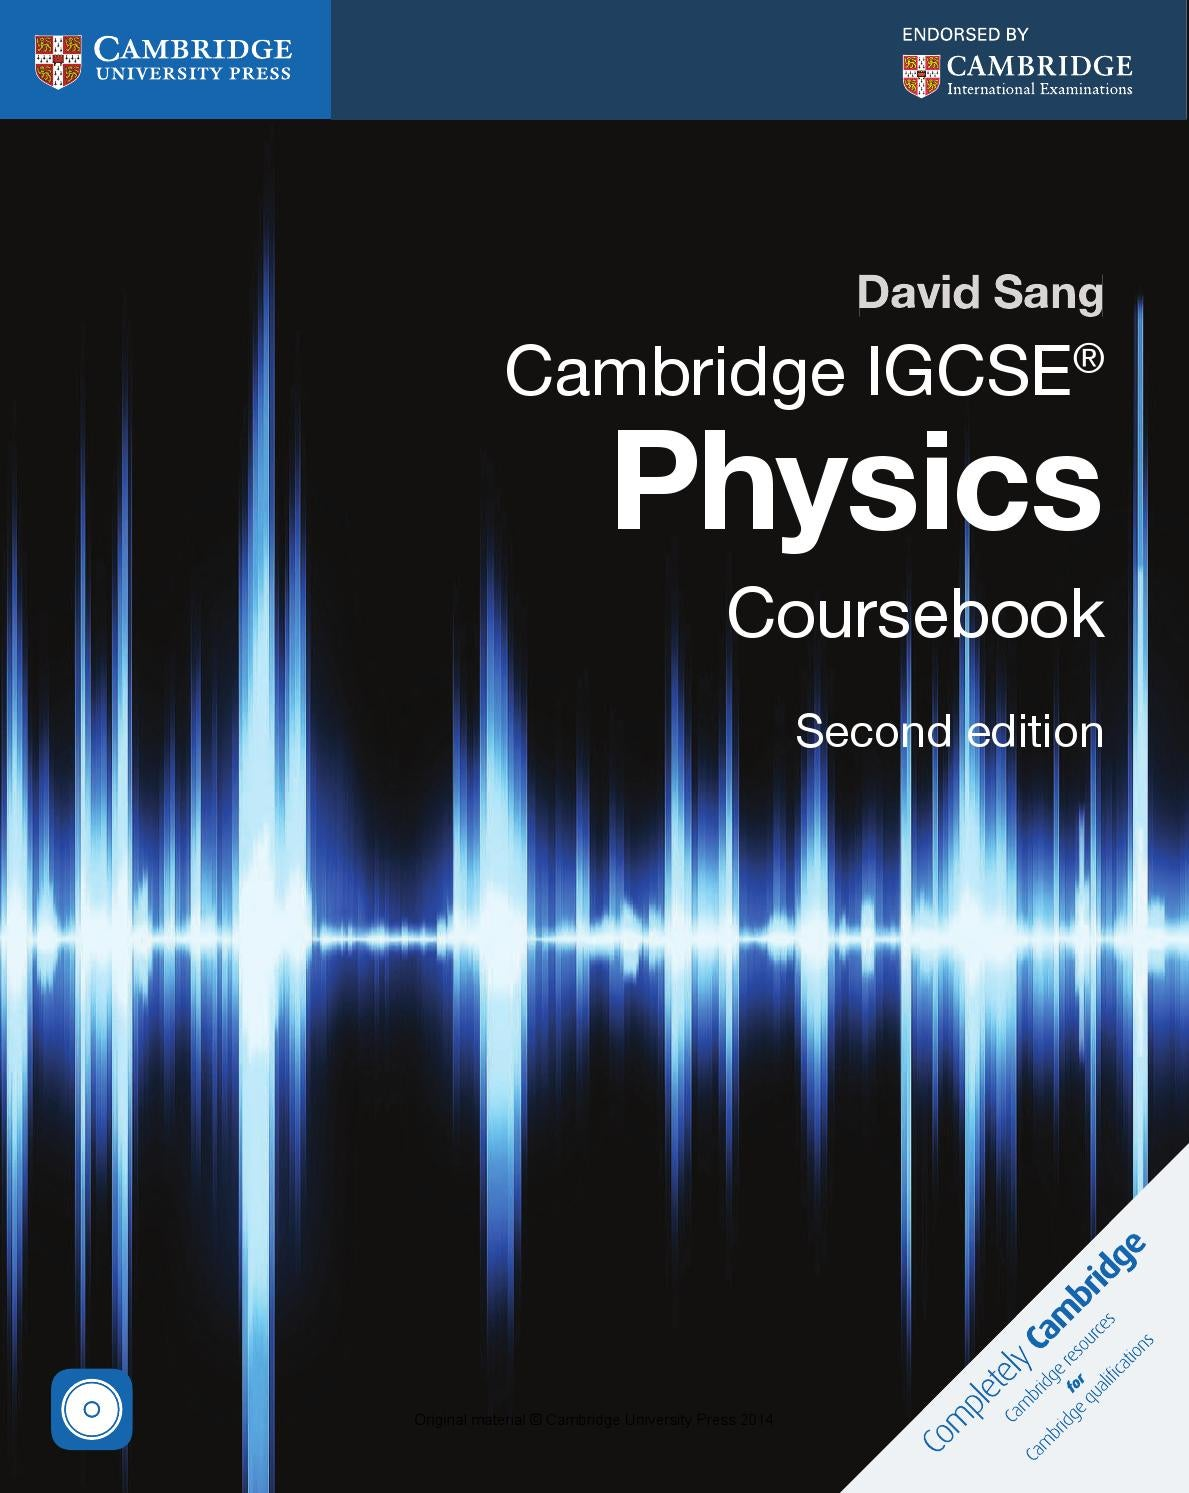 Cambridge Igcse Physics Coursebook Second Edition By